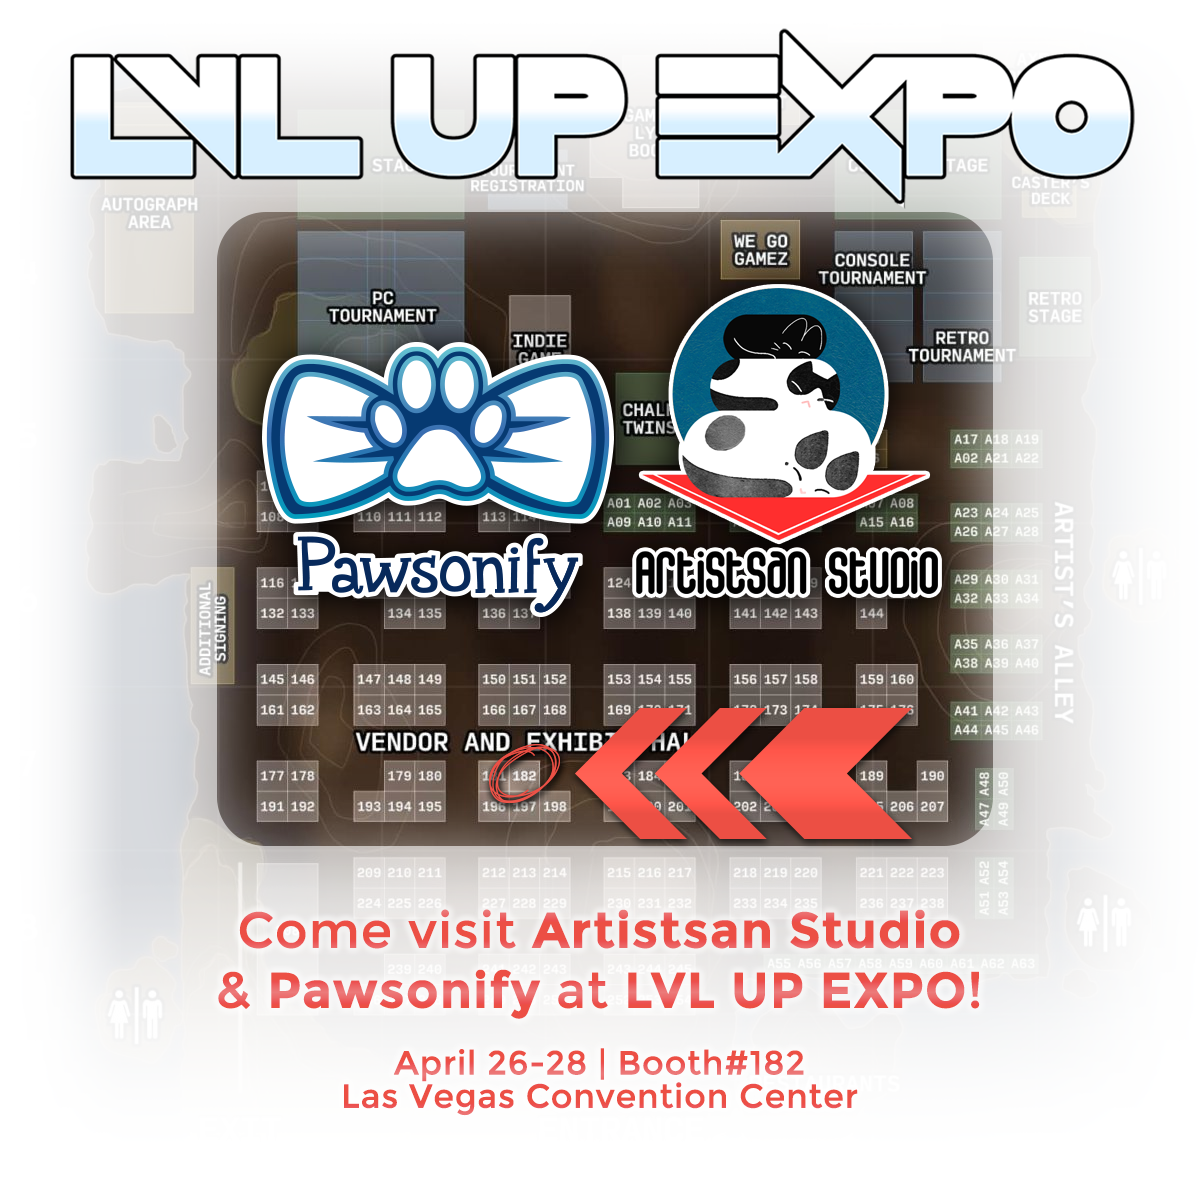 Pawsonify at LVL UP EXPO Las Vegas, NV